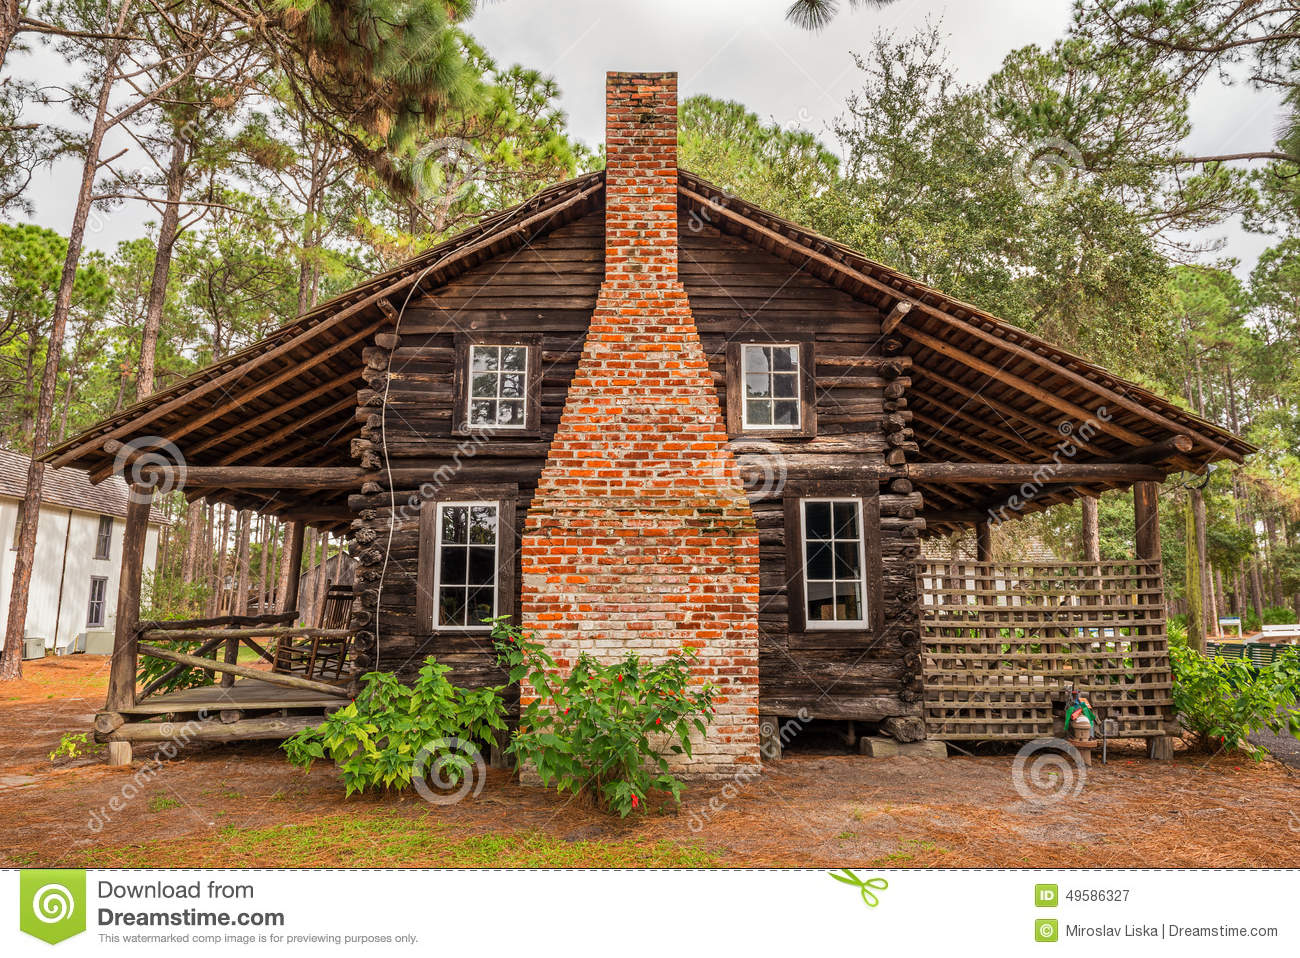 Pinellas county heritage village editorial photography for Cracker style log homes prices